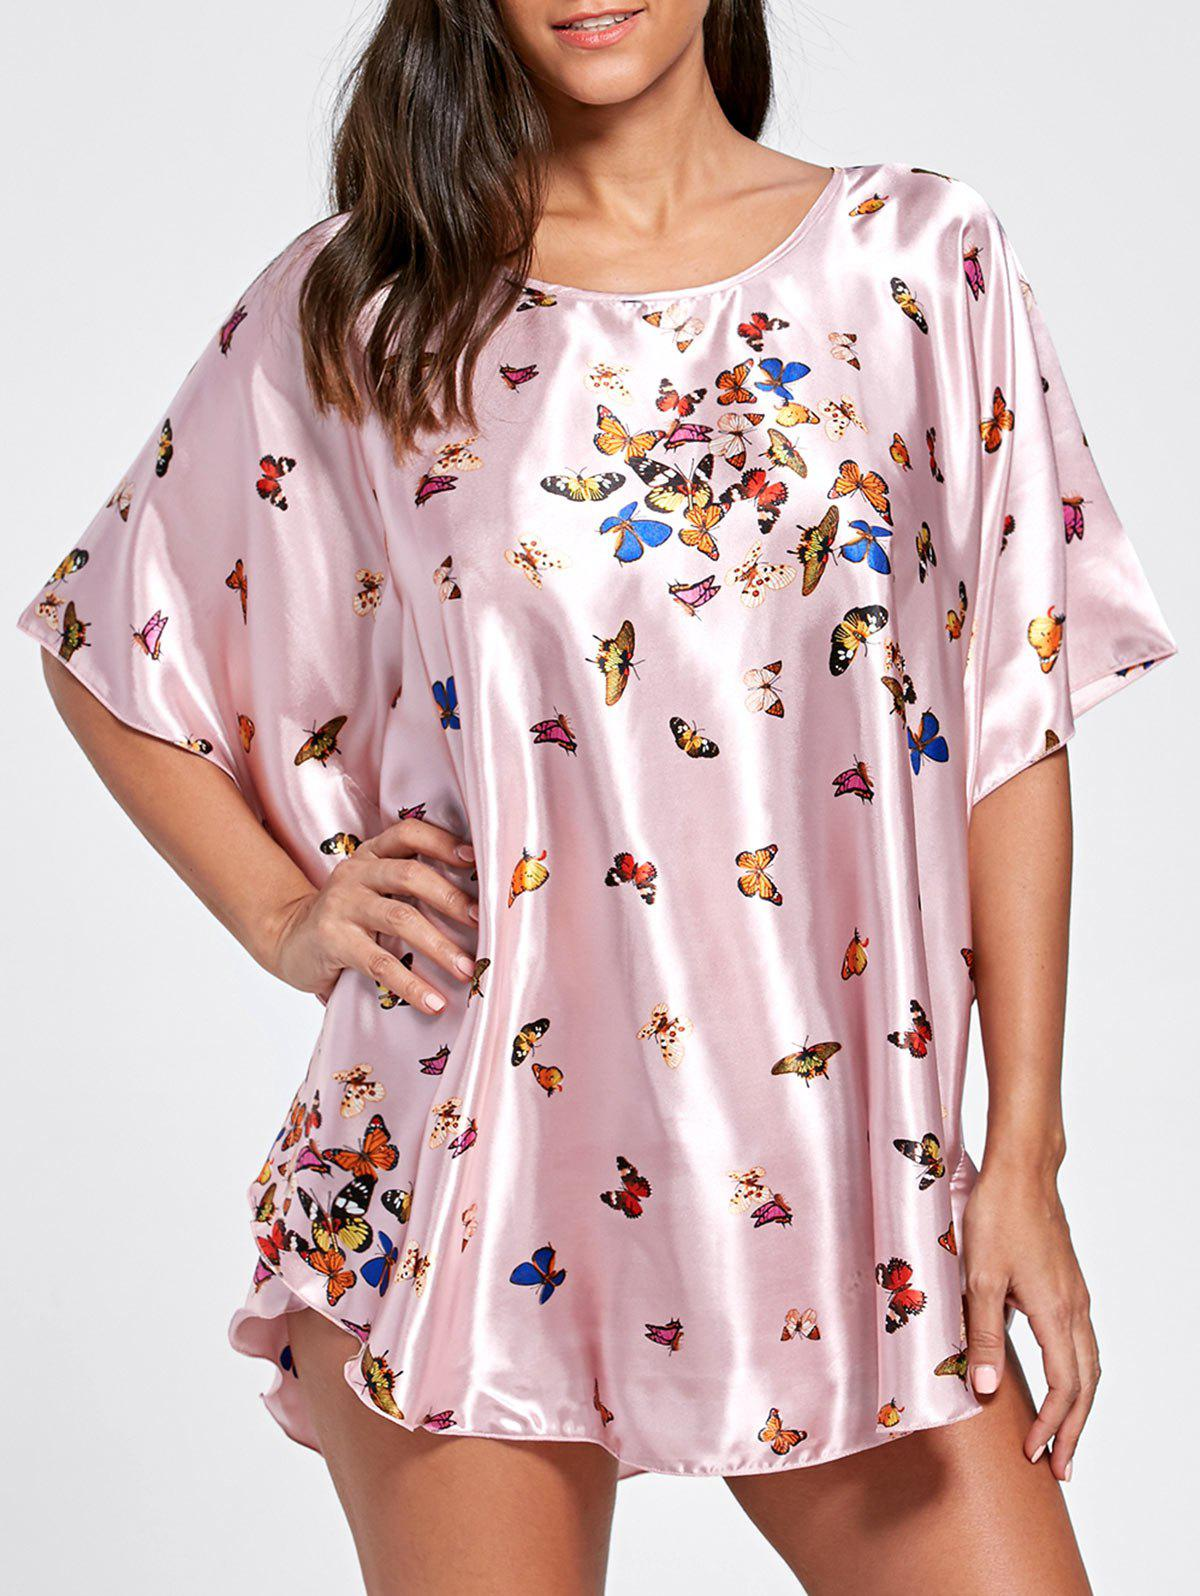 Batwing Sleeve Tunic Pajama TopWOMEN<br><br>Size: ONE SIZE; Color: LIGHT PURPLE; Material: Polyester; Pattern Type: Print; Weight: 0.2200kg; Package Contents: 1 x Top;